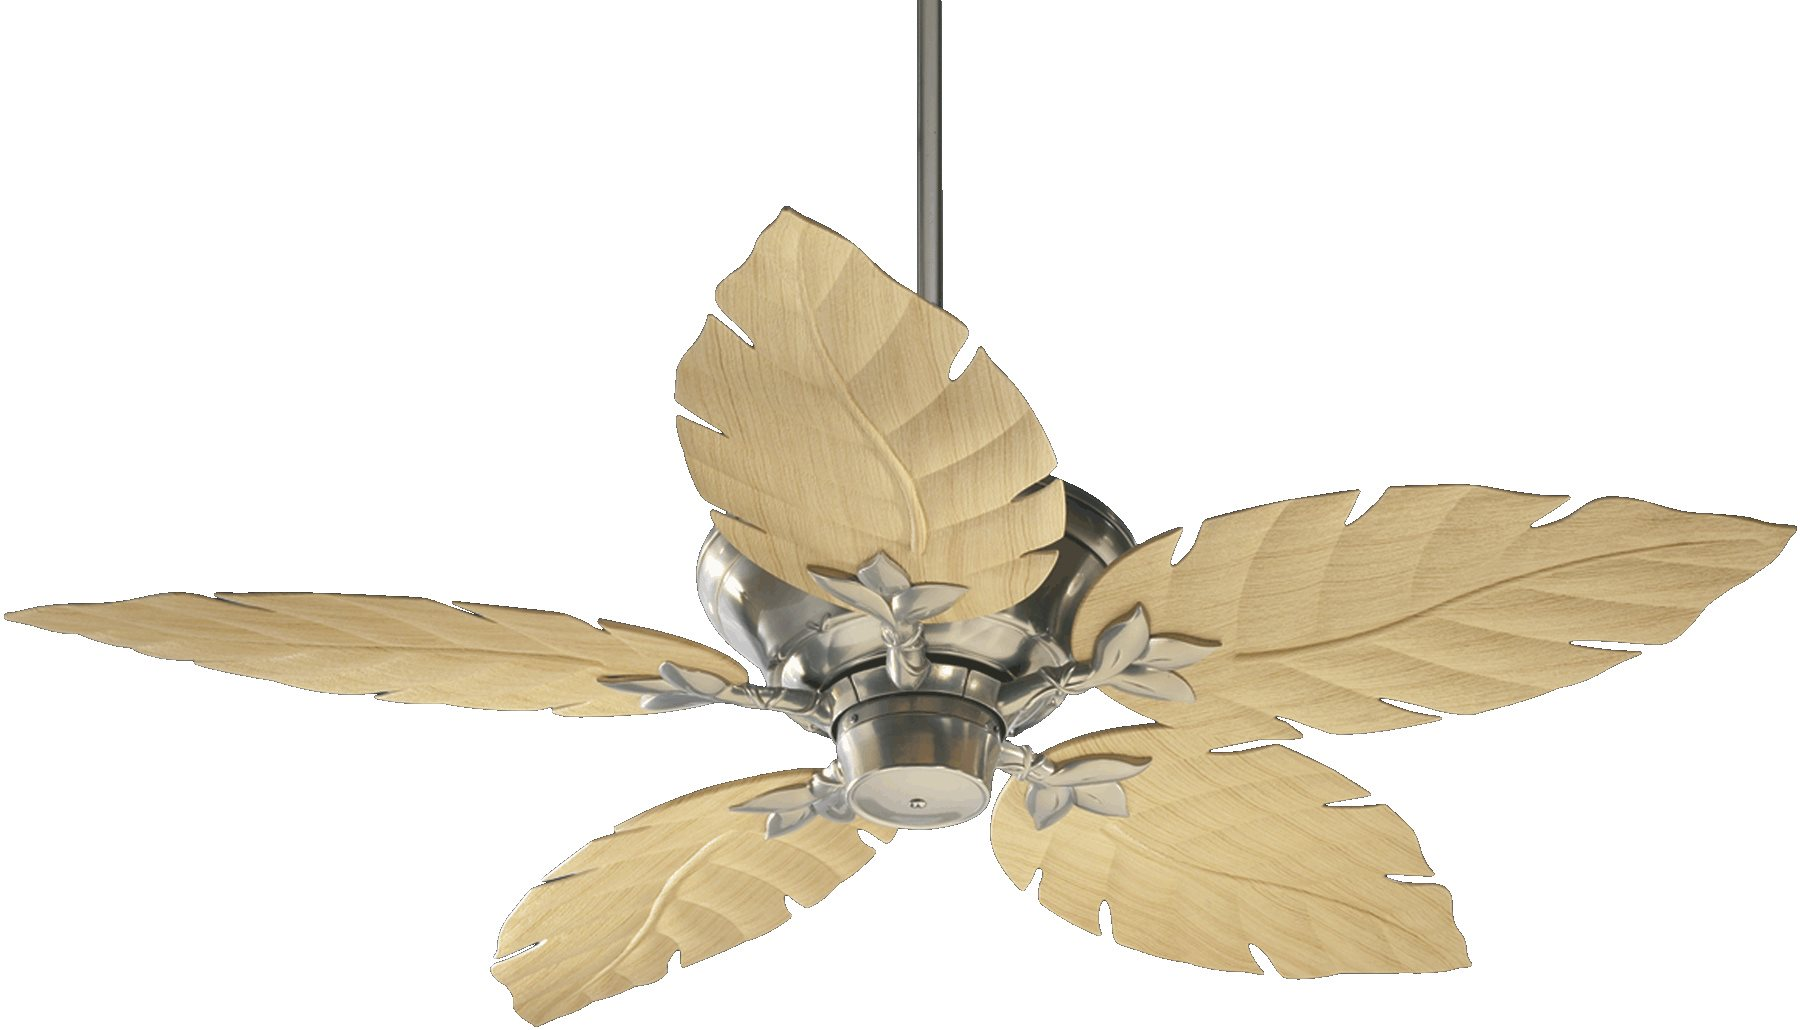 Quorum Lighting Monaco 52quot; Patio Tropical Ceiling Fan QR135525 See